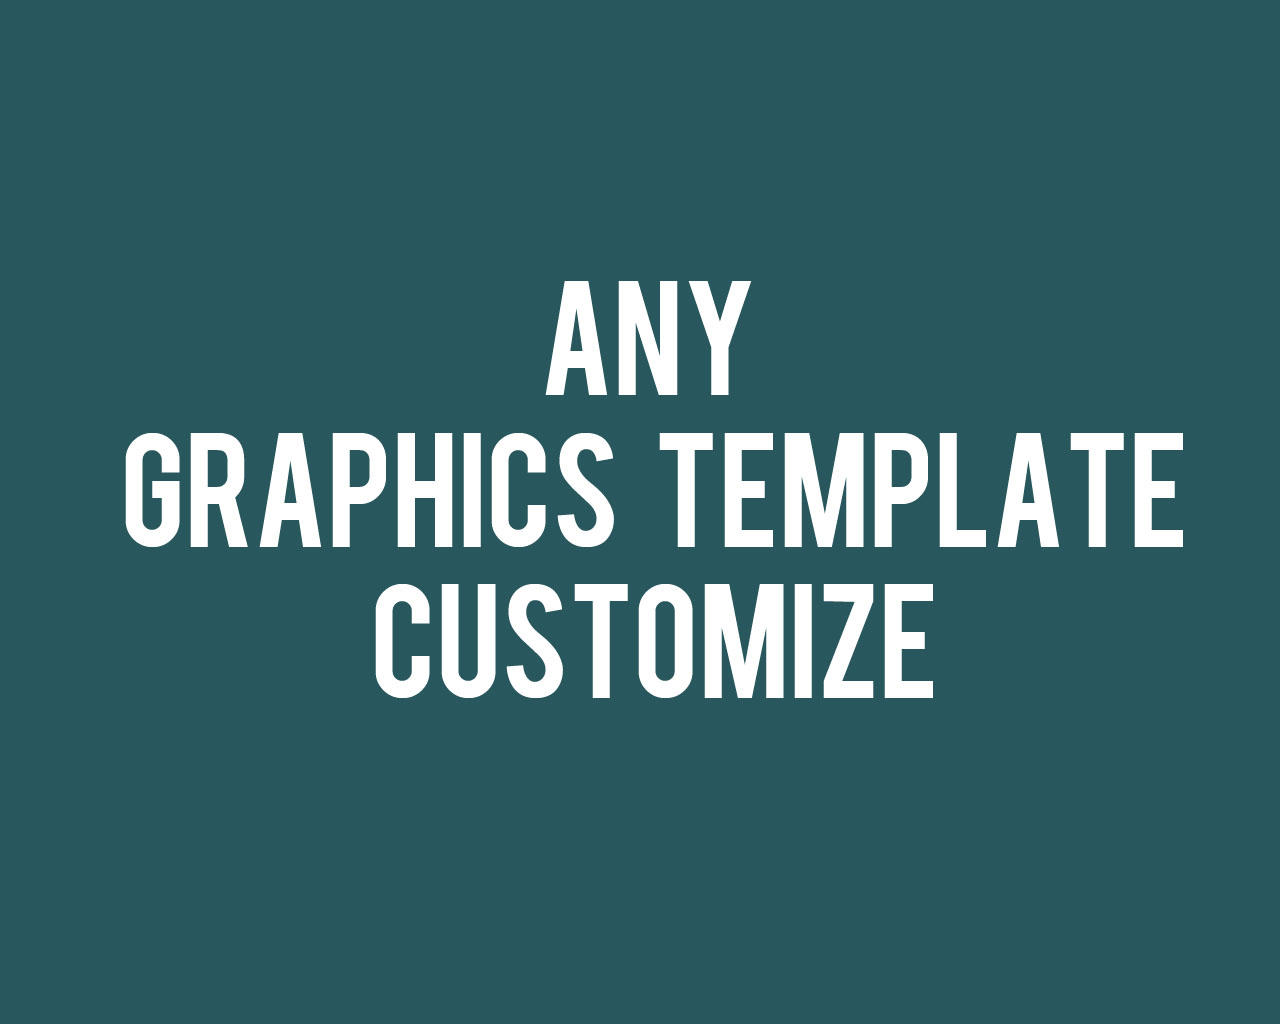 Customization Your Any Graphics or Template by logoboss - 104406